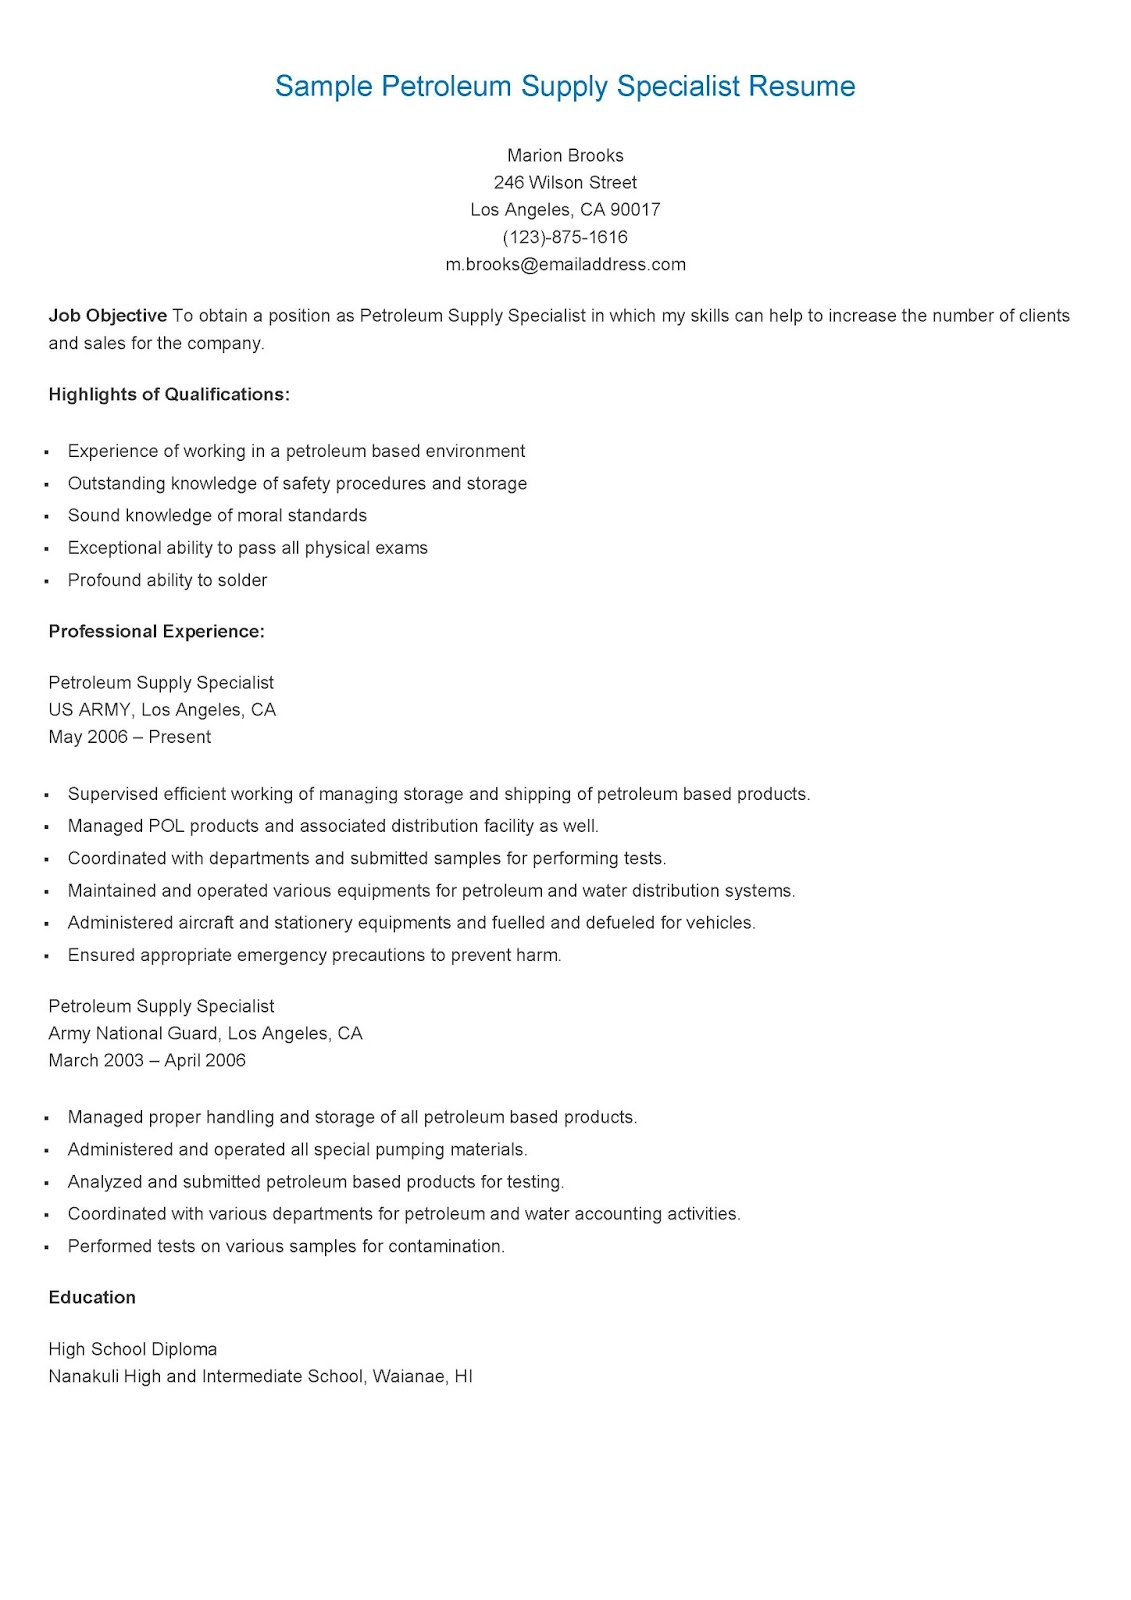 91 volunteer work resume samples how to write a resume for